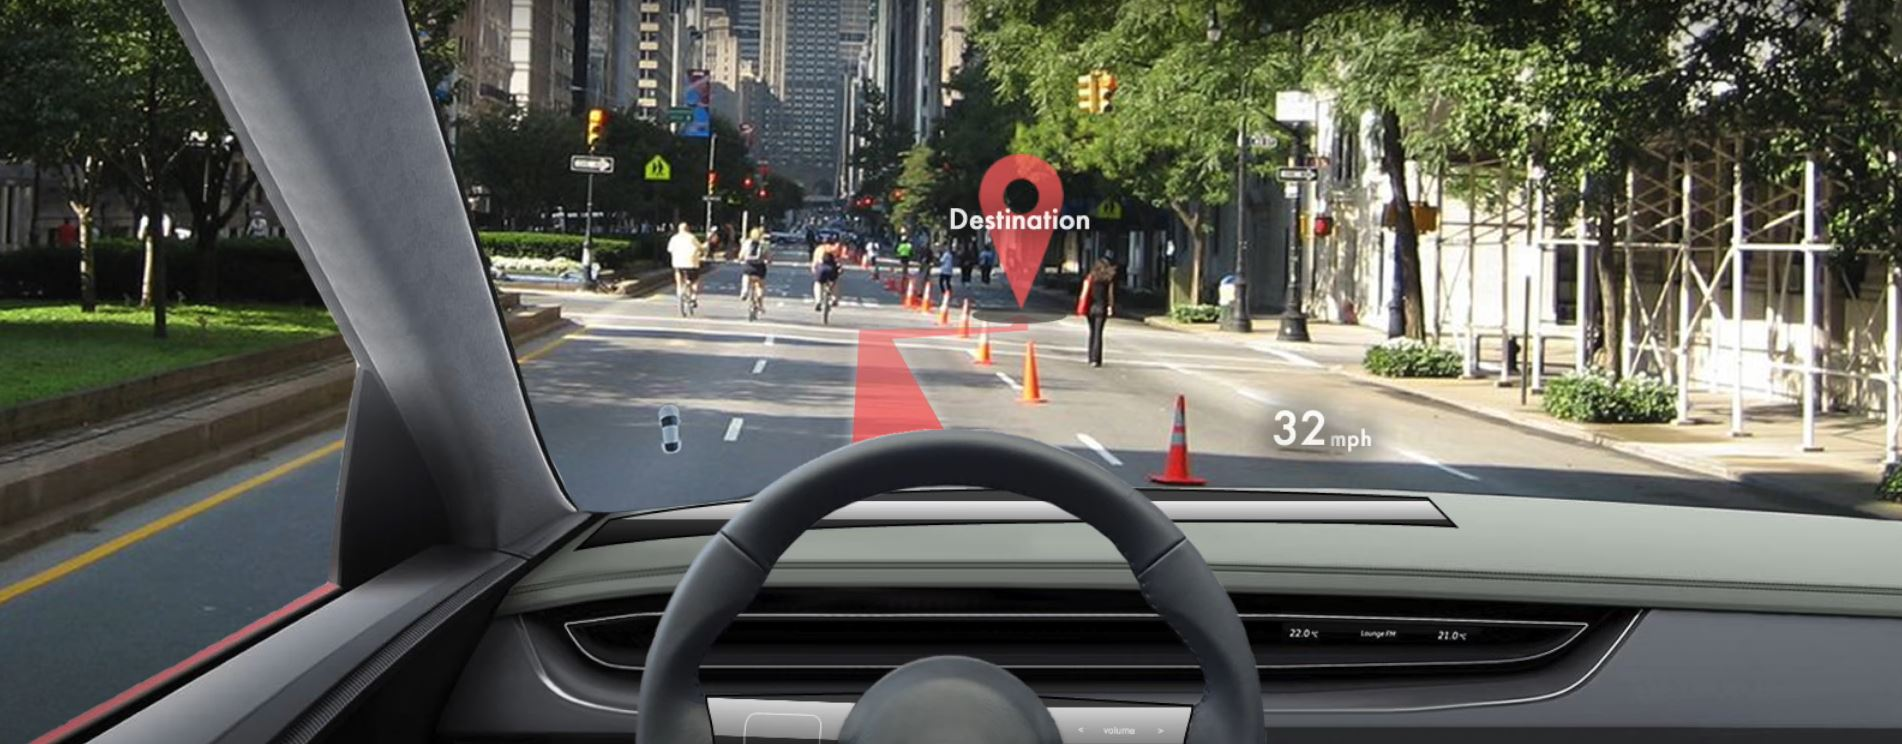 windshield hud - Heads Up Display (HUD): Drive Undistracted